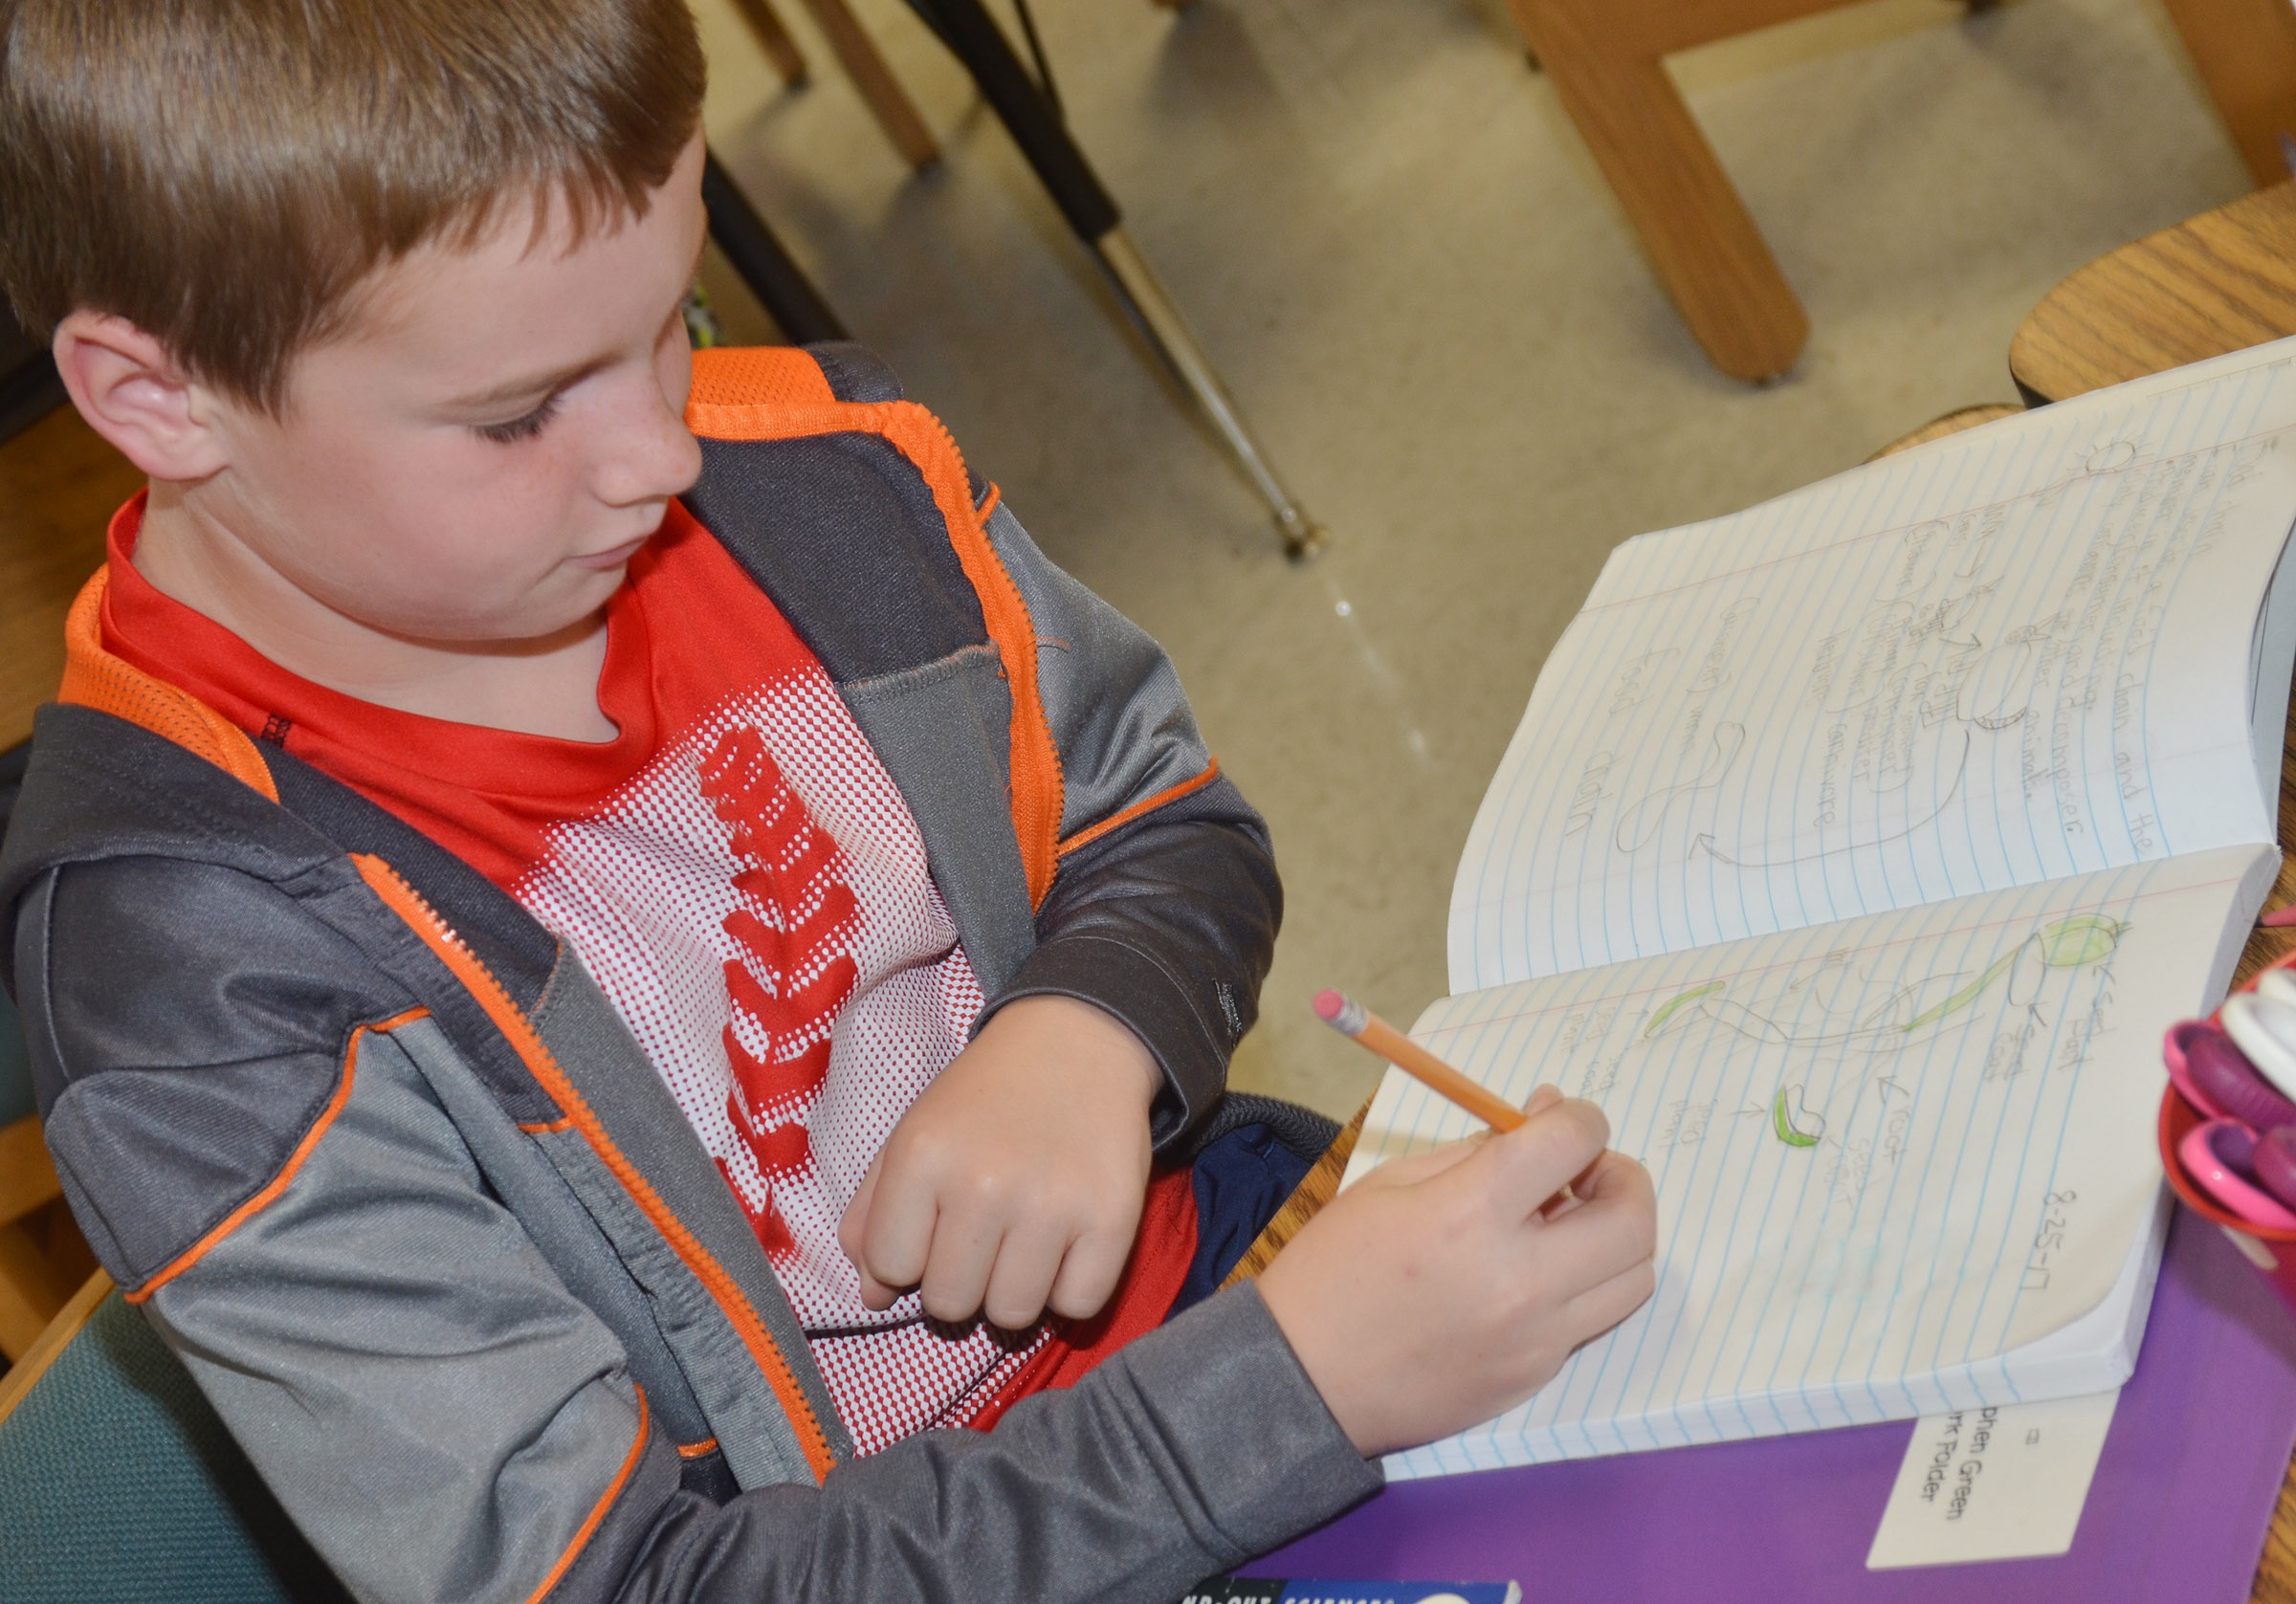 CES third-grader Stephen Green records the progress of his lima bean plant in his journal.